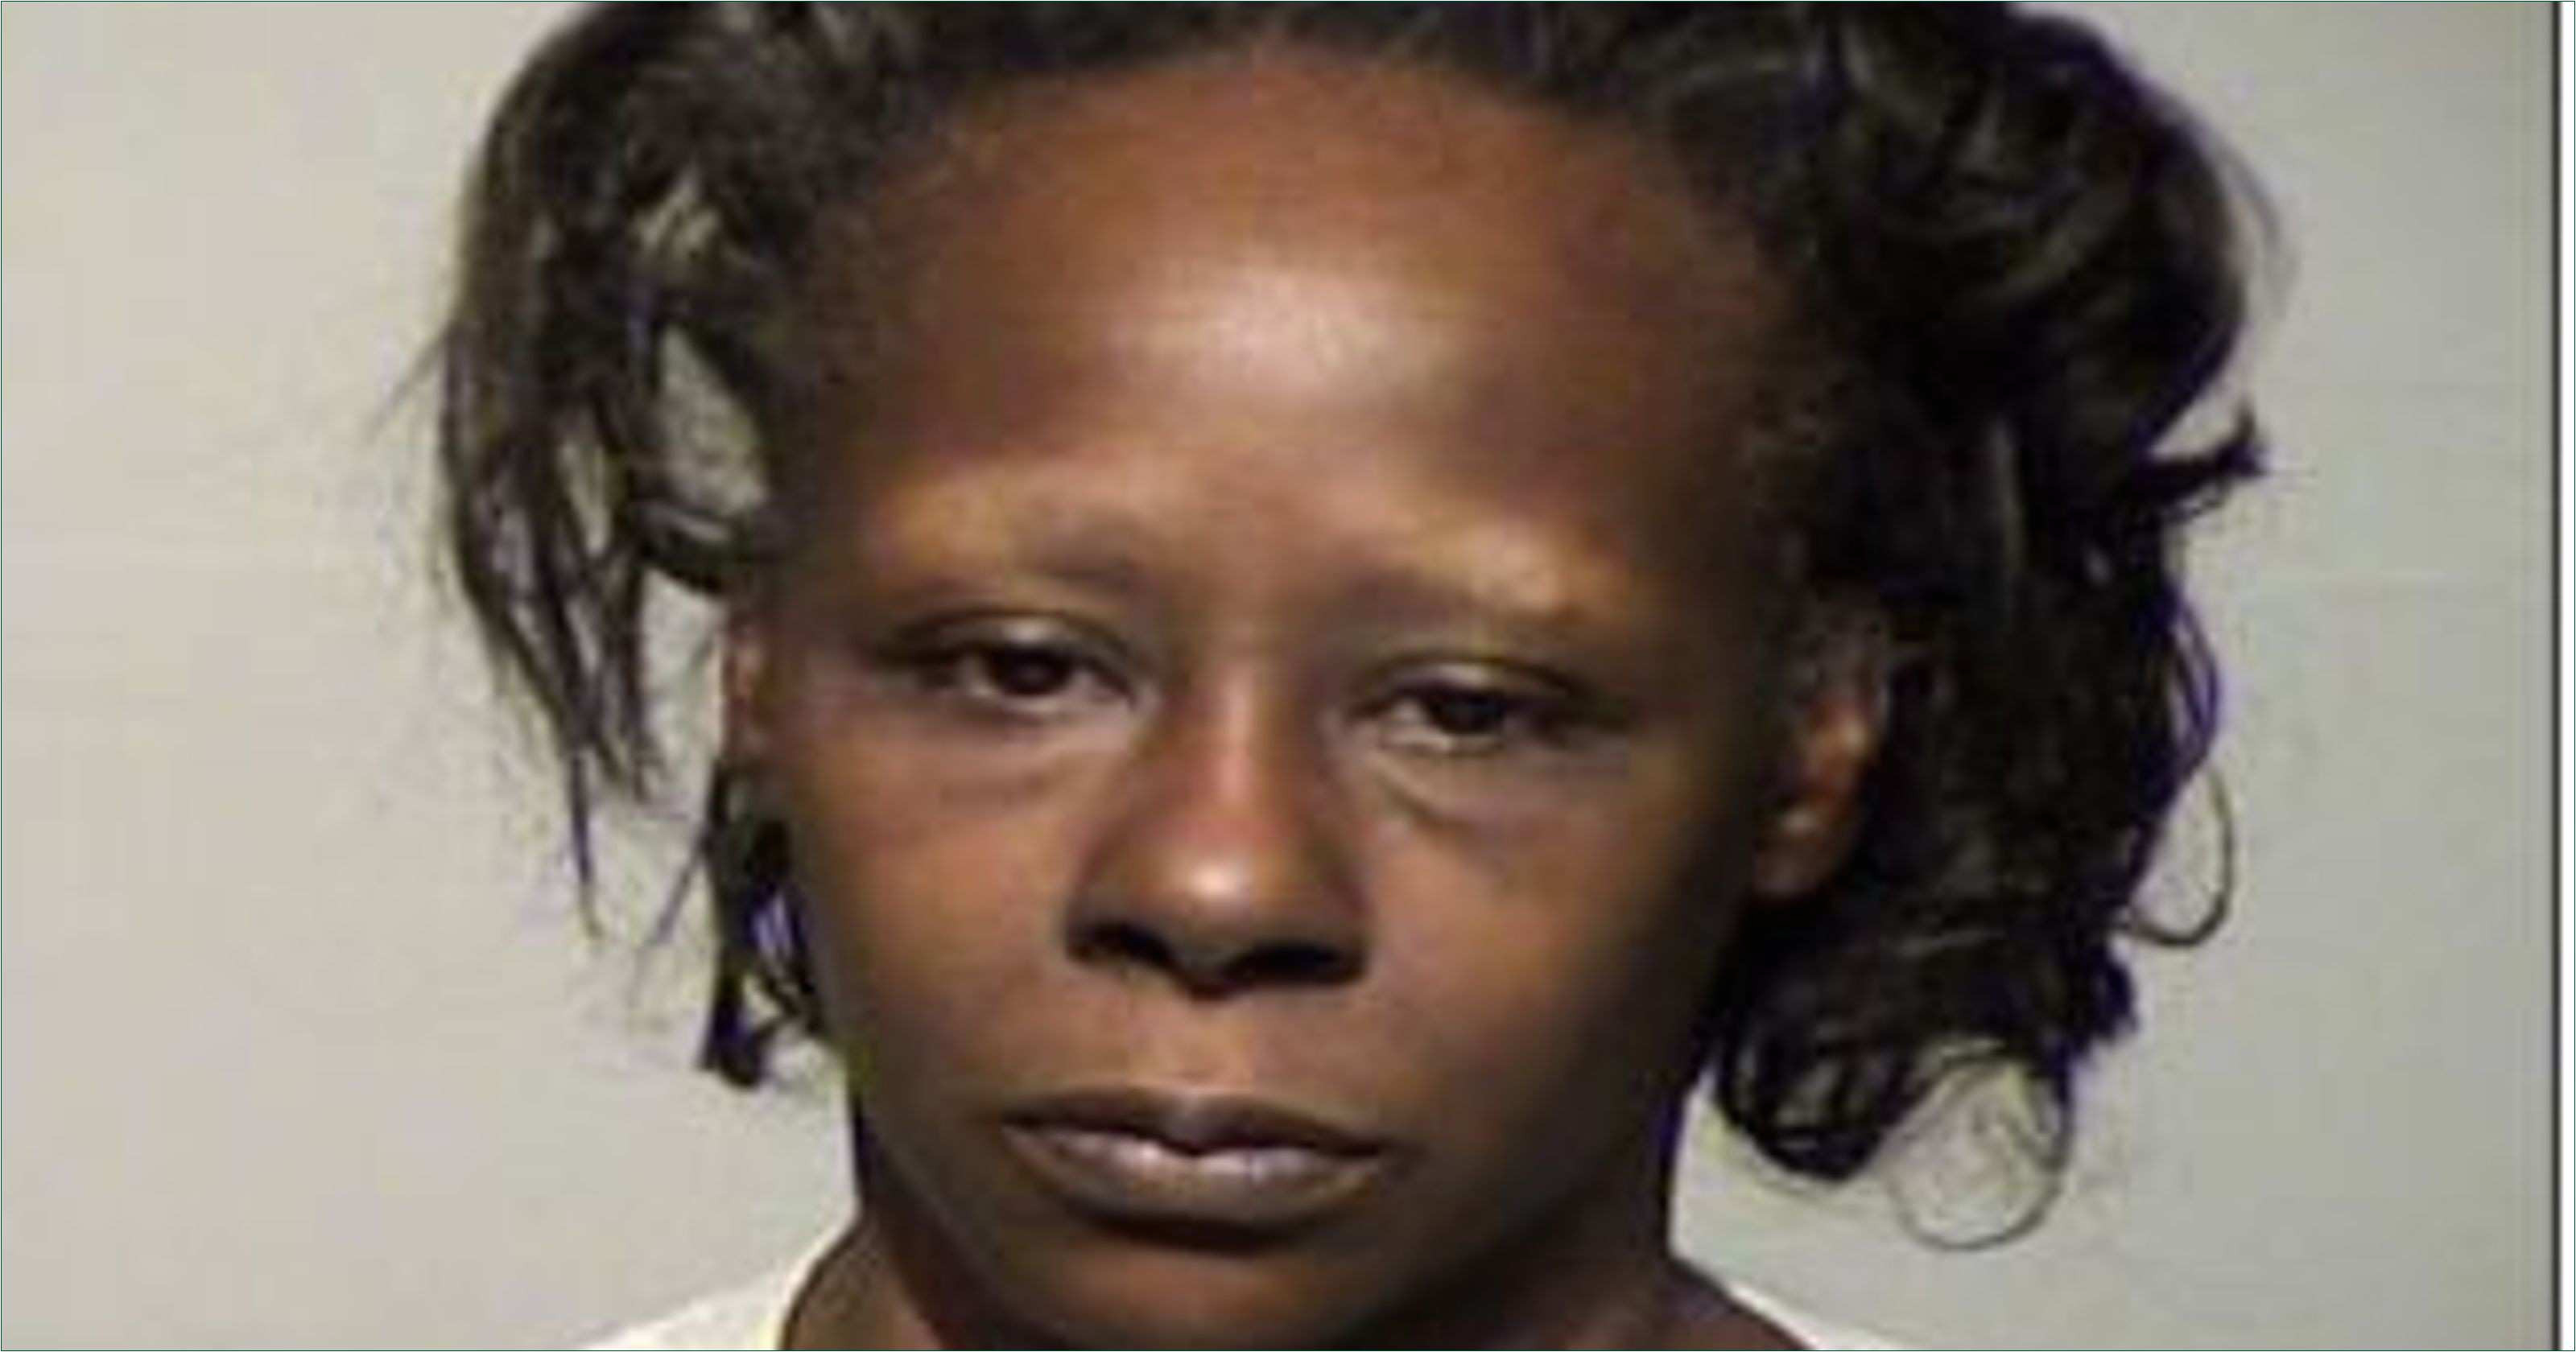 8 Year Old Girl Hairstyles Wearable T83w Mother Charged In toddler S Od Previously Had 4